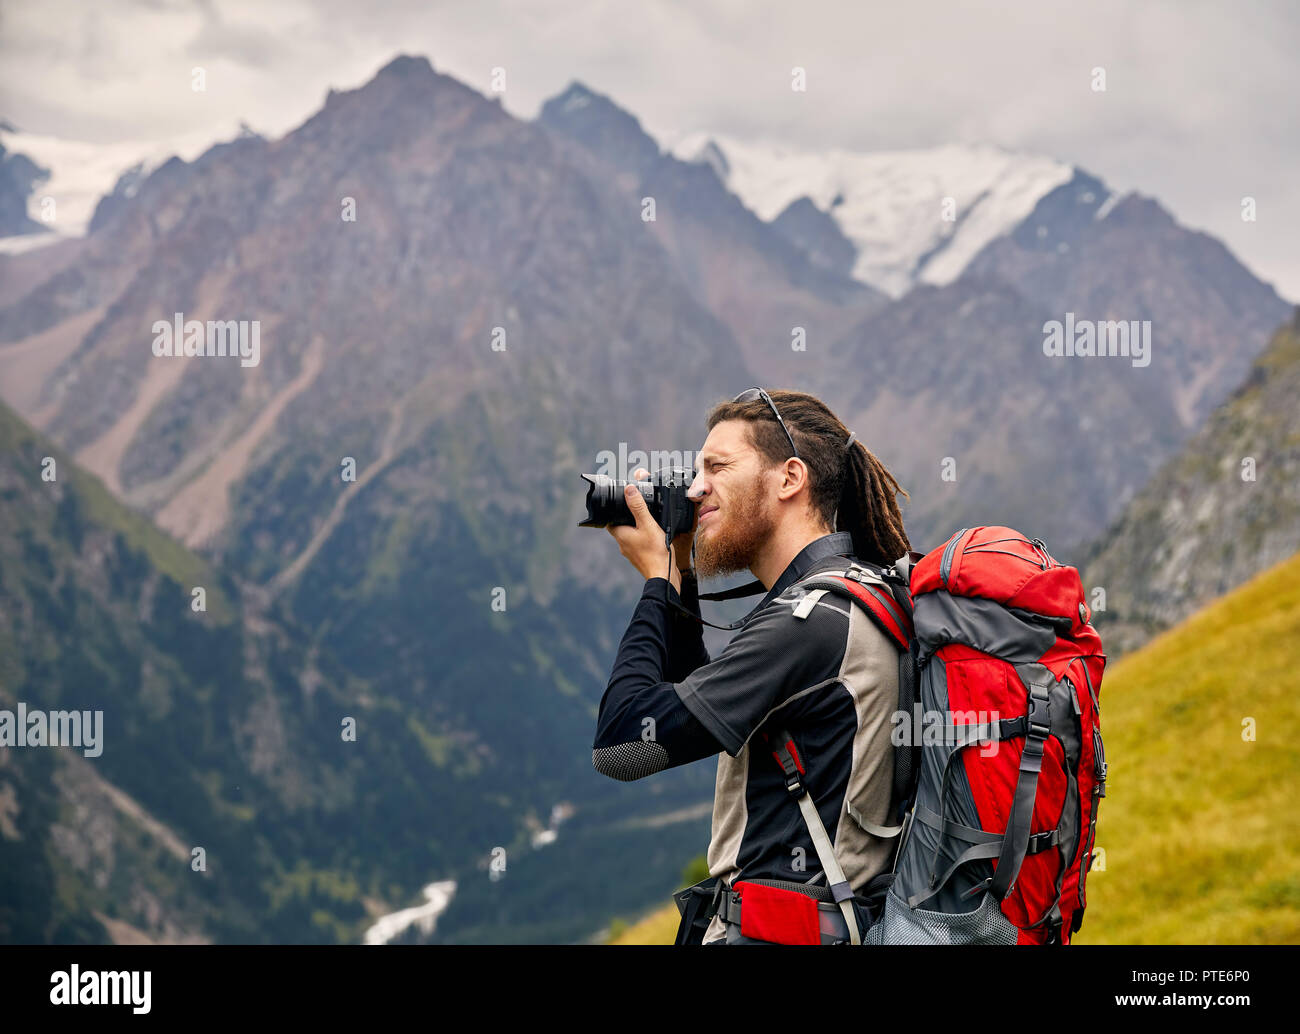 Man photographer with big backpack and camera taking photo of the mountains. Travel Lifestyle concept adventure active vacations outdoor - Stock Image